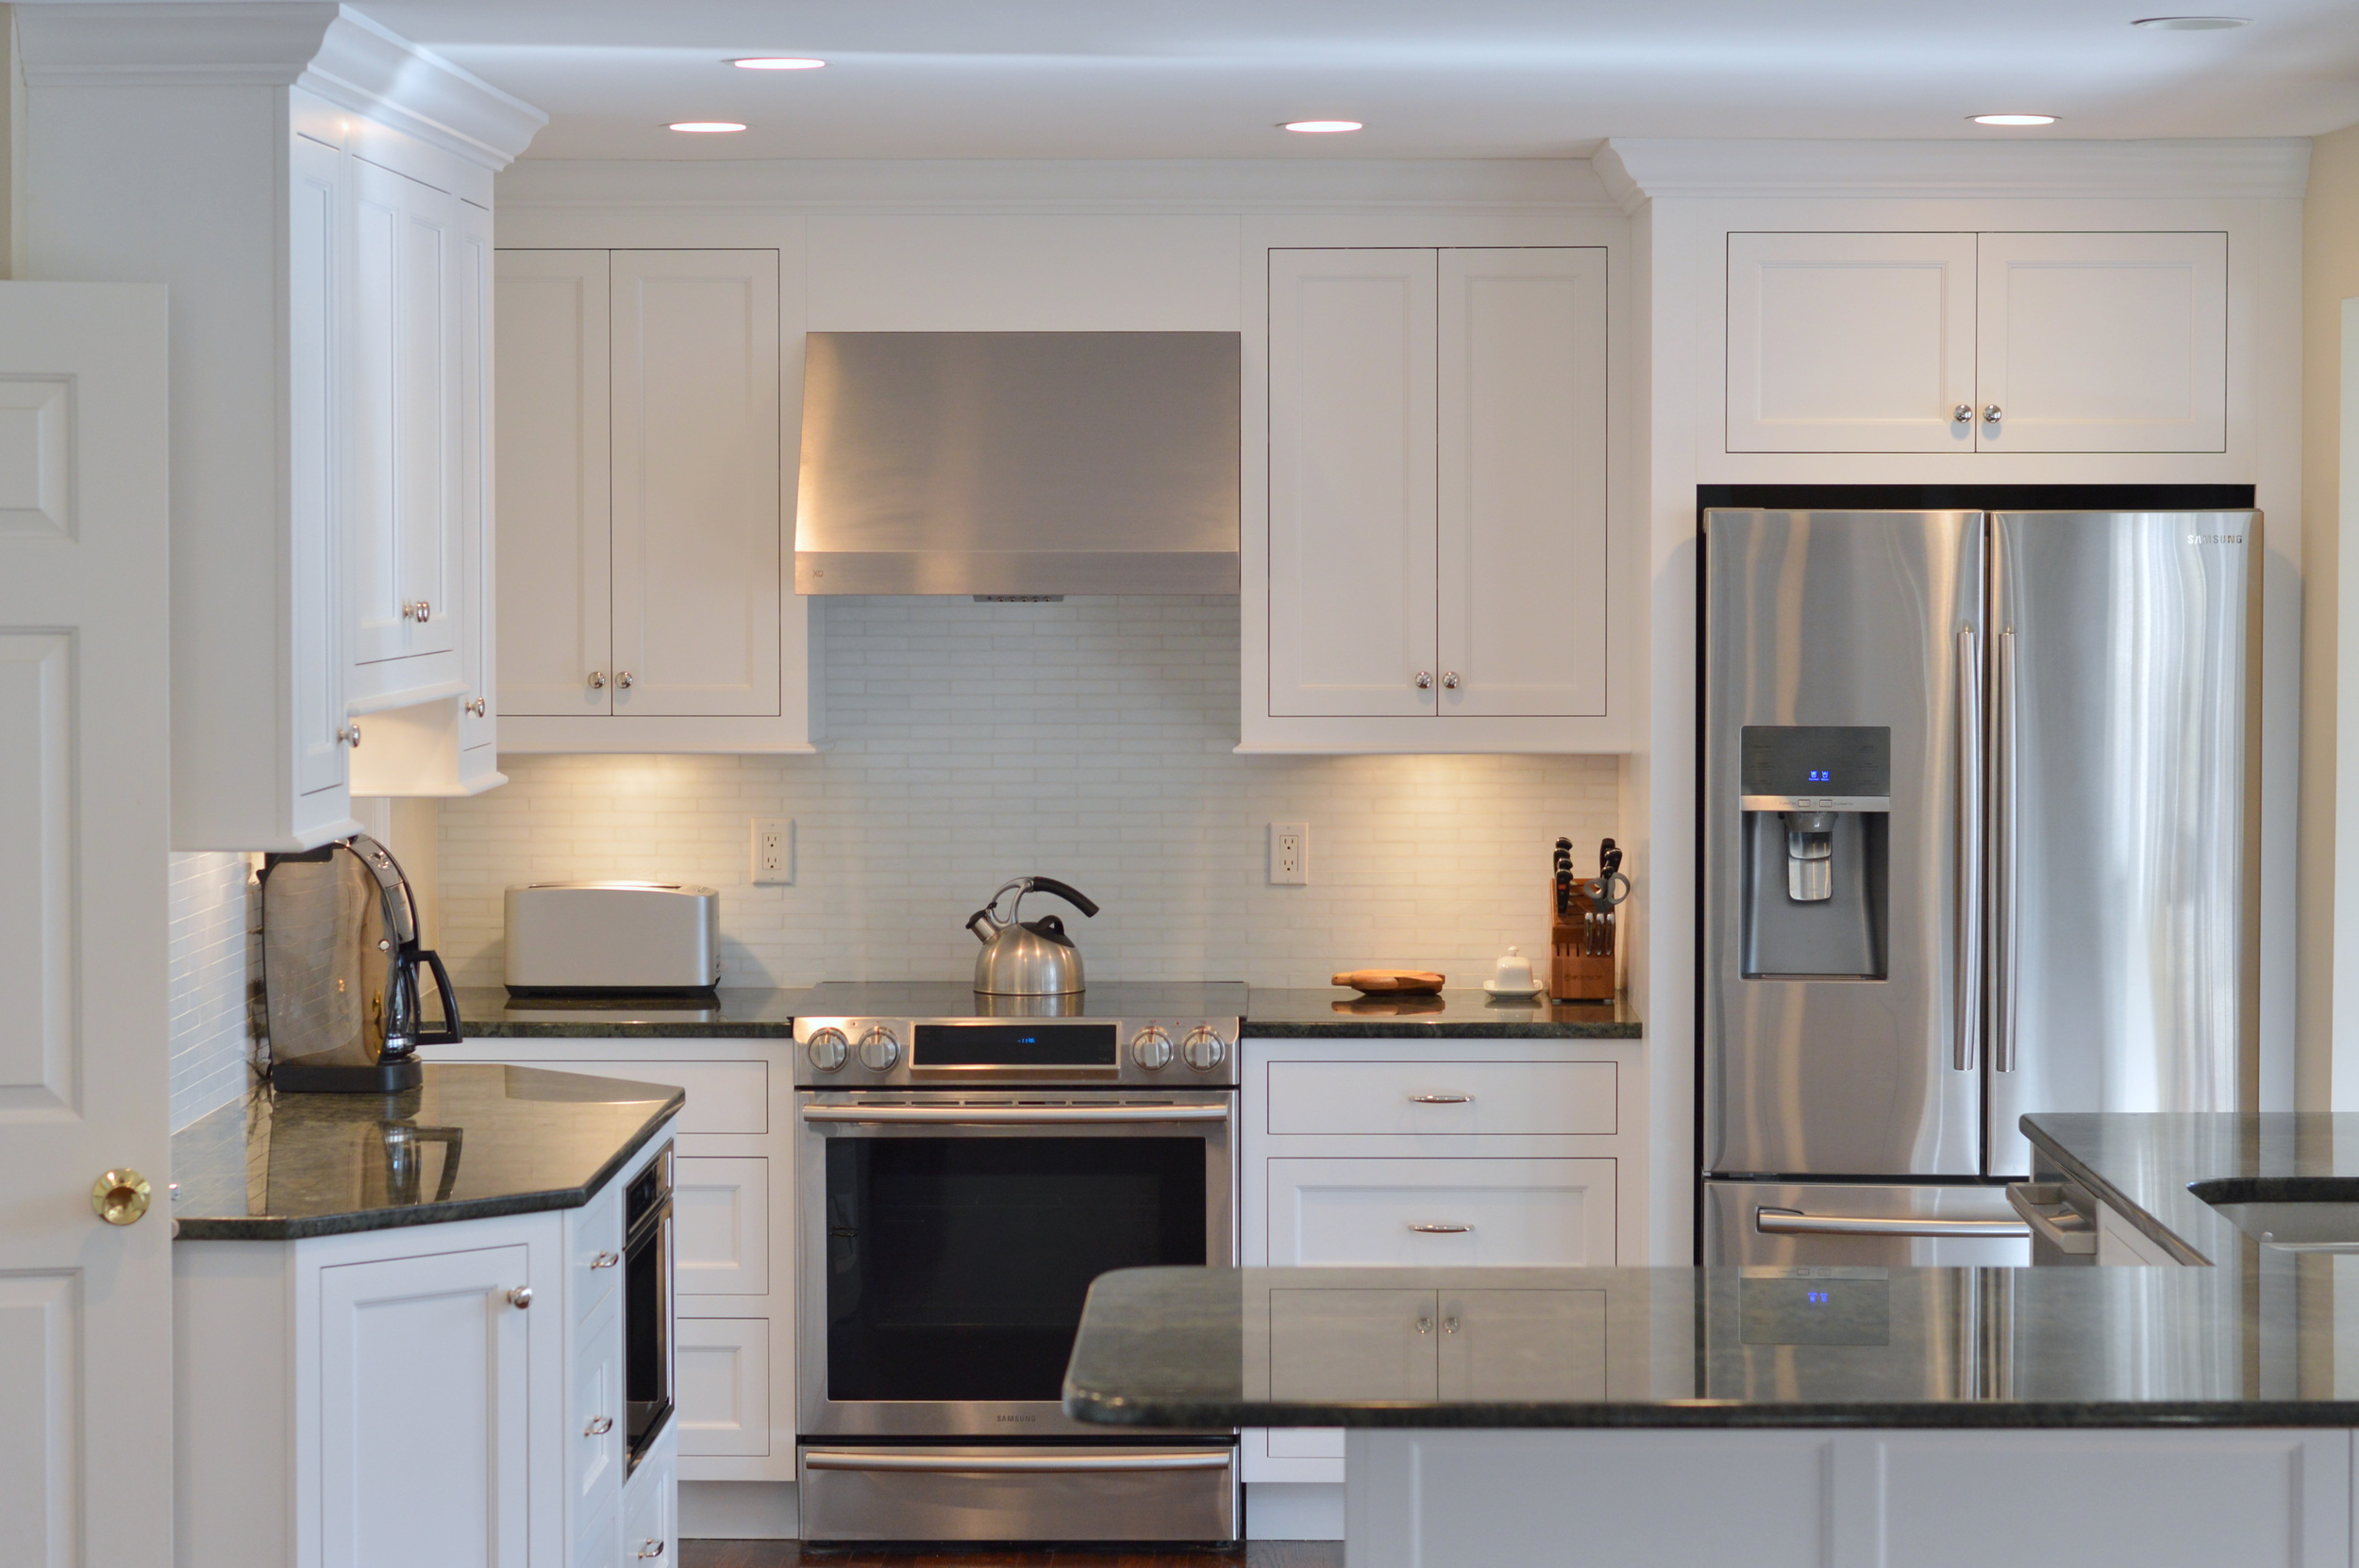 White Inset Kitchen Cabinets - Stainless Steel Appliances